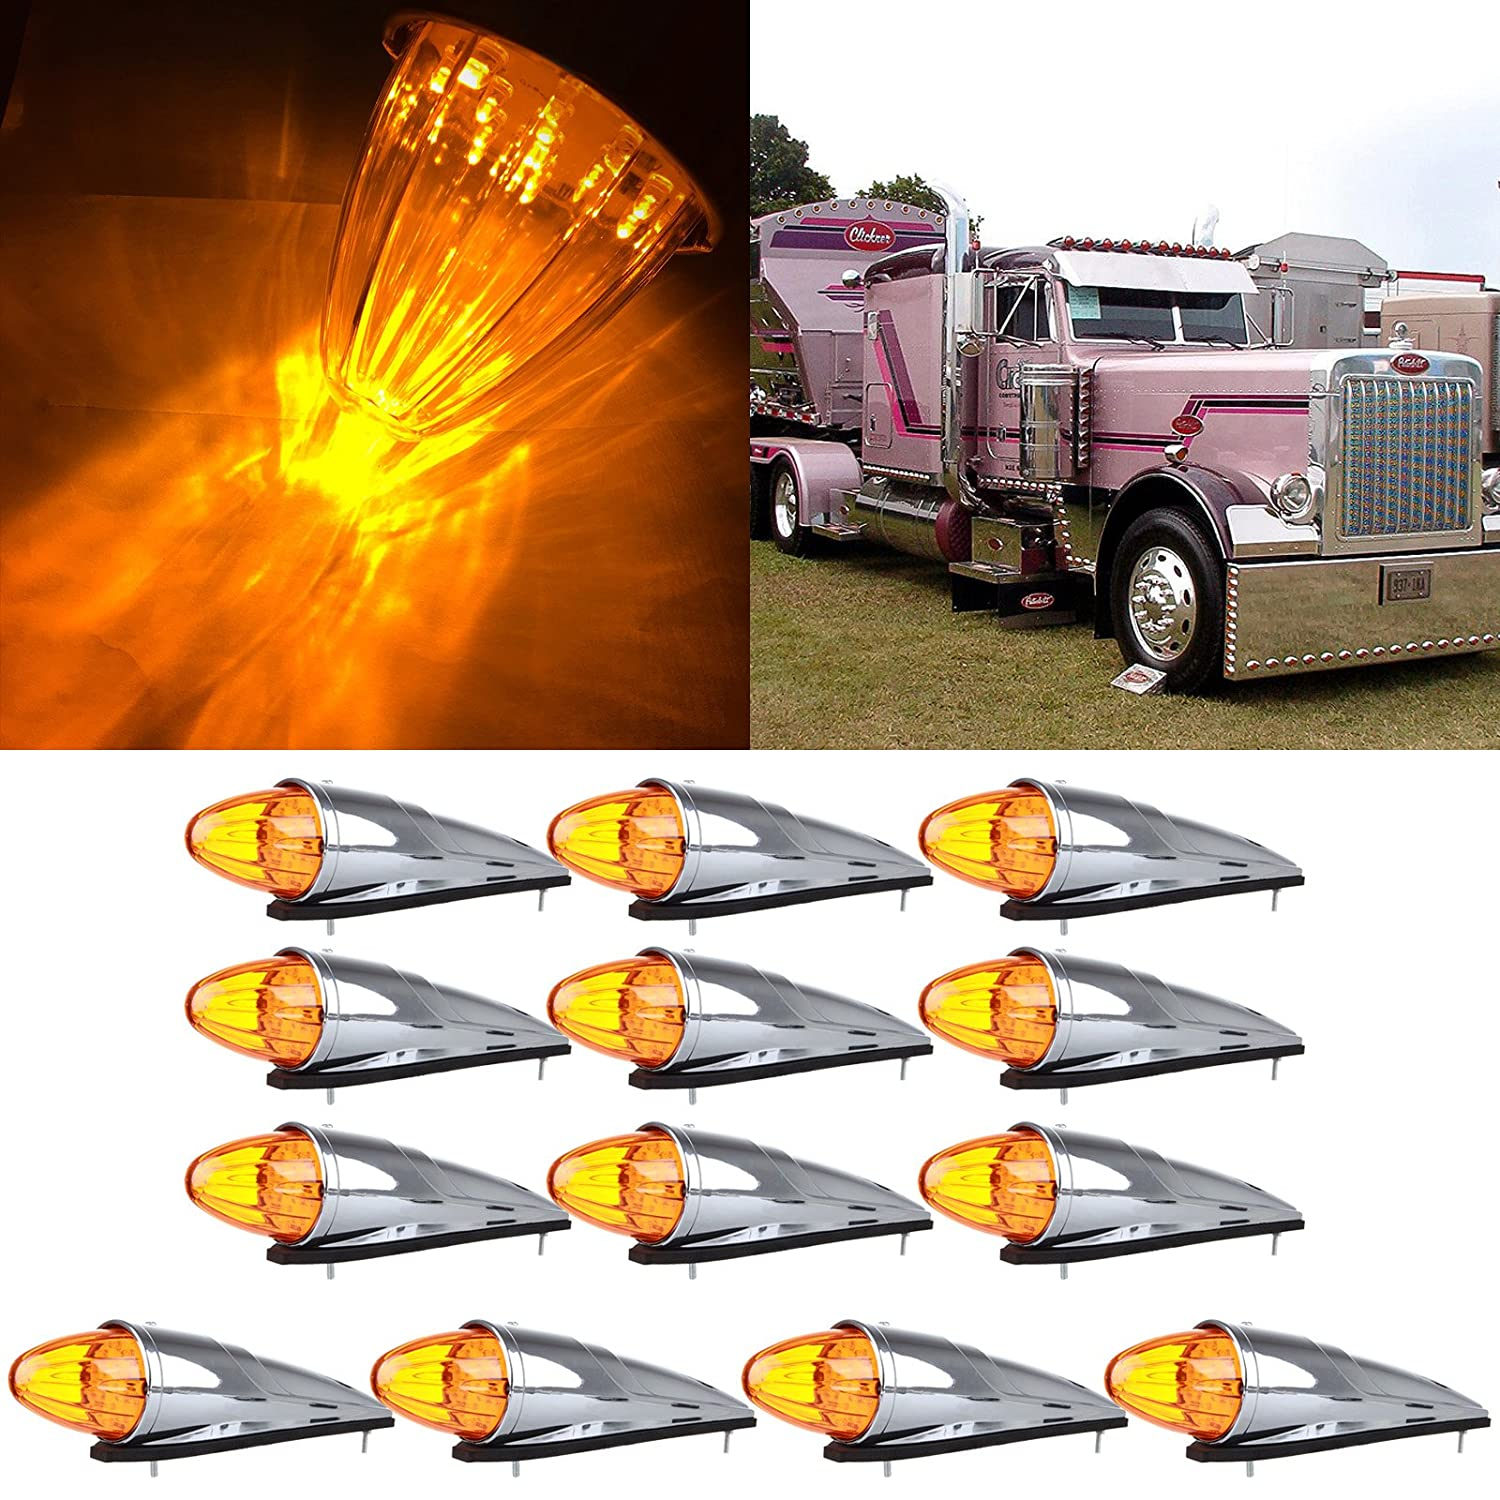 cciyu Amber 17 LED Cab Roof Light Chrome Torpedo Cab Marker Clearance Roof Running Top Light Assembly Replacement fit for Heavy Duty Trucks Kenworth Peterbilt Freightliner Mack (13Pcs) 805114-5210-1151381